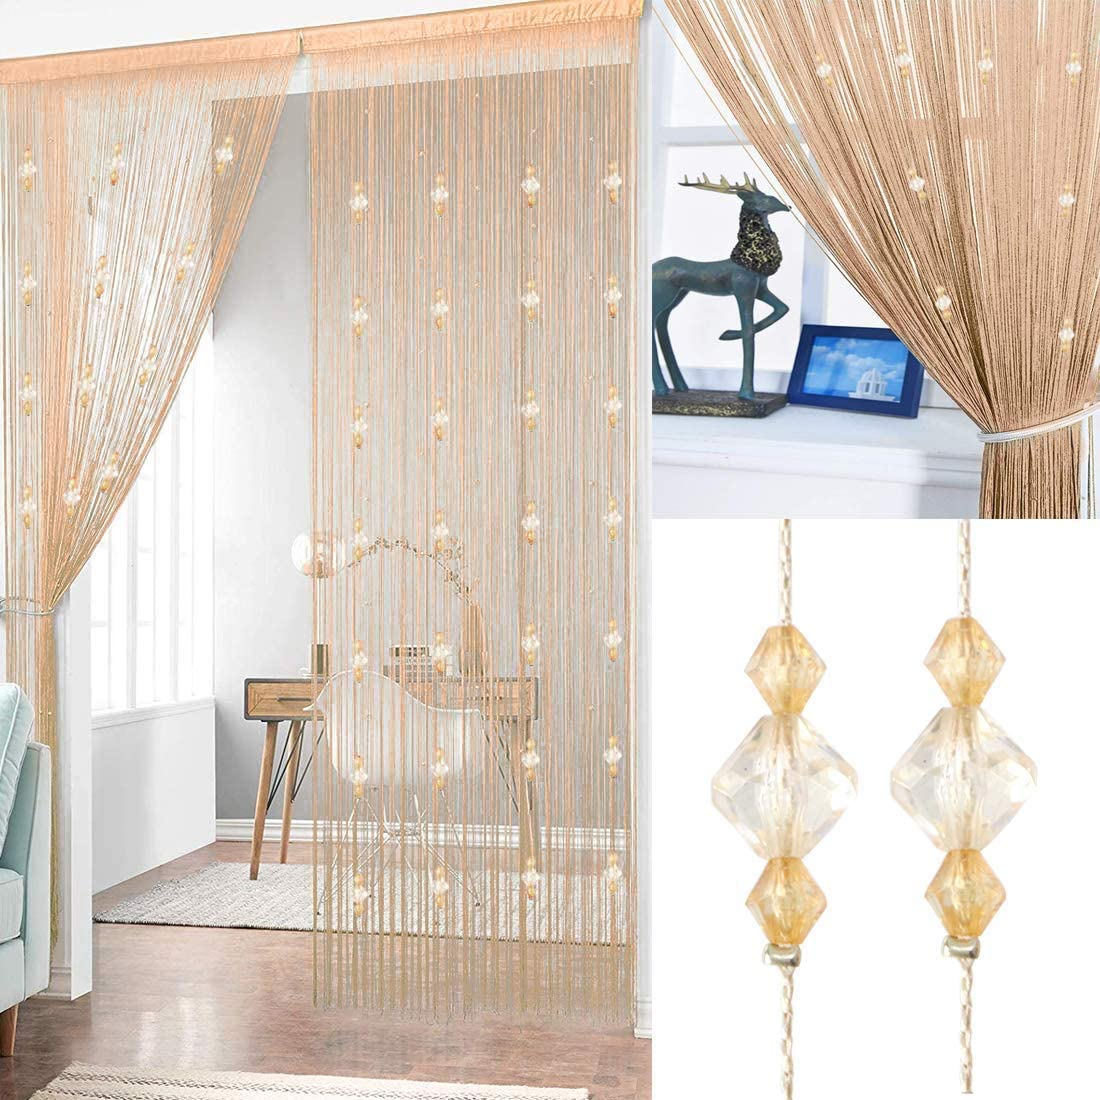 AIZESI Beaded Door Curtain String Curtain for Doorways Divider or Window 90x200cm Champagne-1pcs